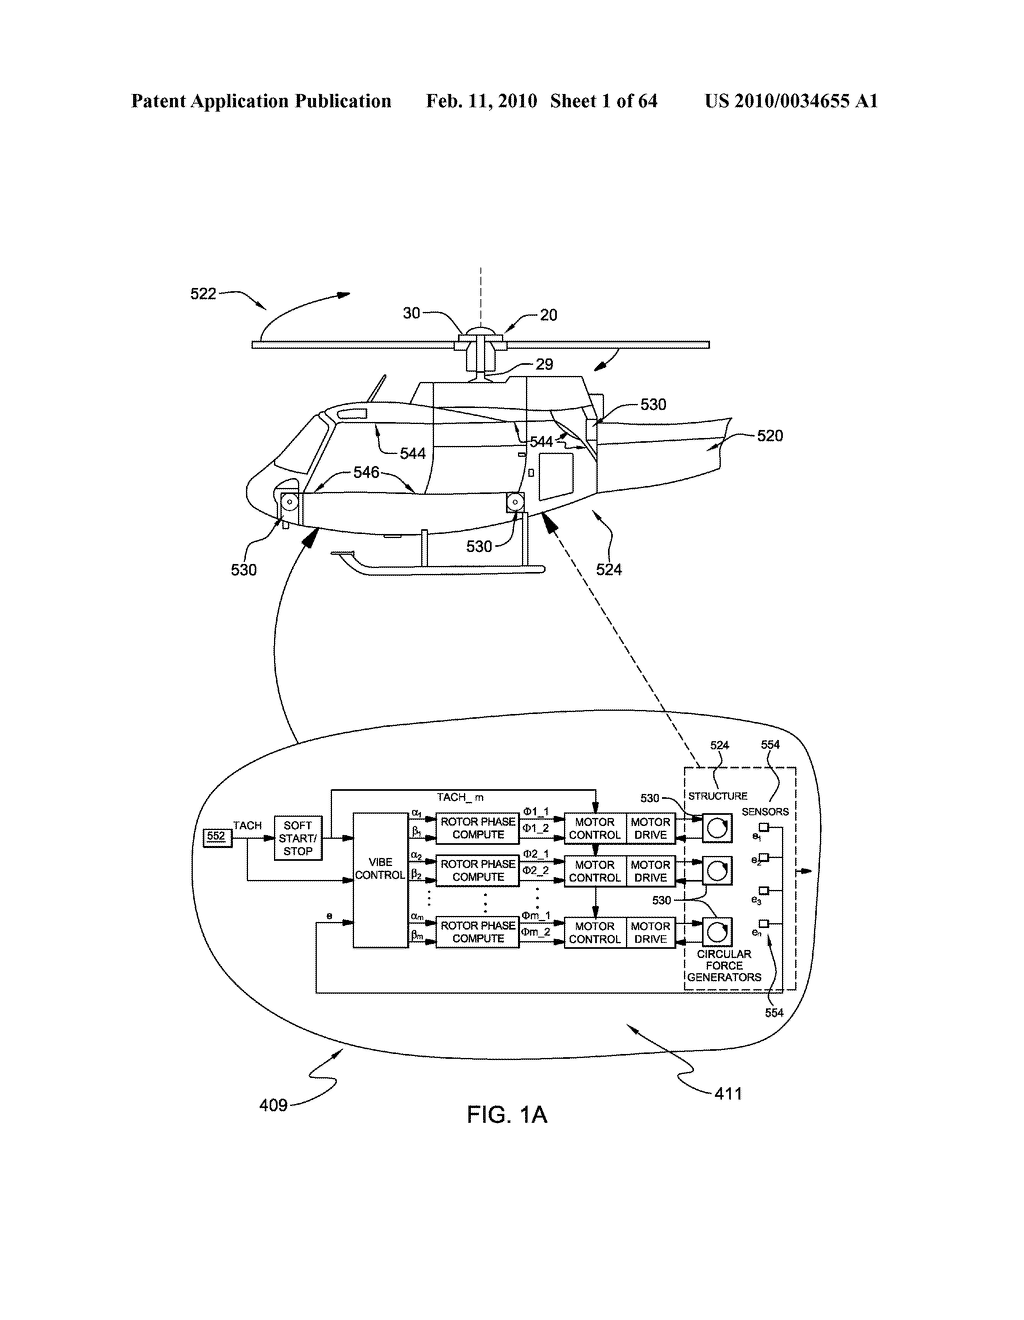 HELICOPTER HUB MOUNTED VIBRATION CONTROL AND CIRCULAR FORCE GENERATION SYSTEMS FOR CANCELING VIBRATIONS - diagram, schematic, and image 02